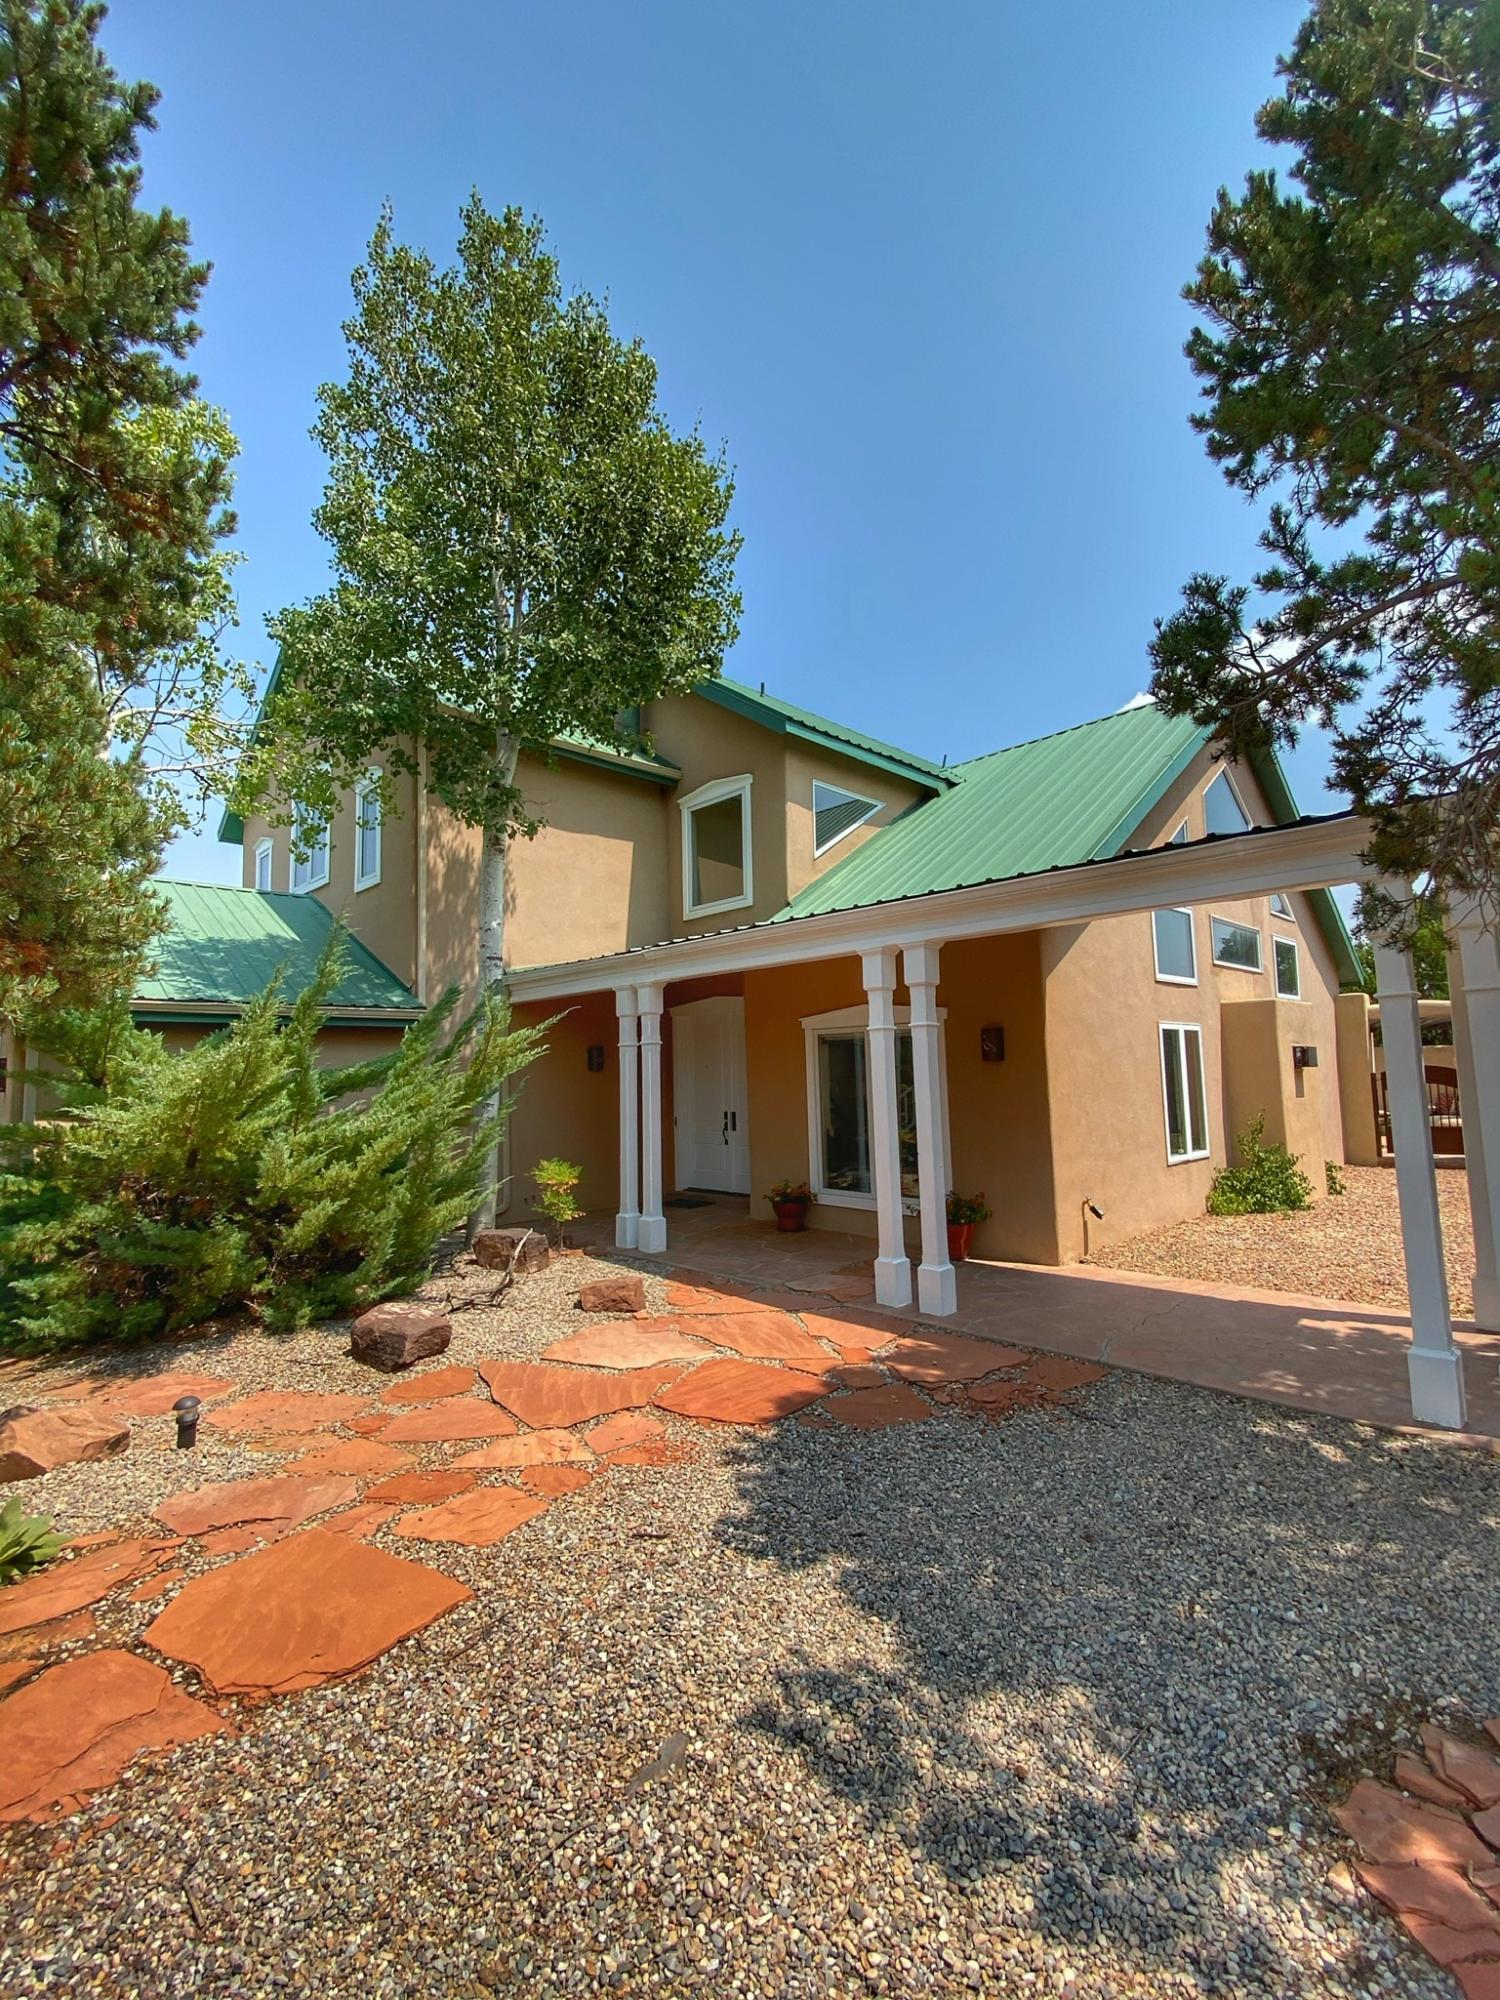 Welcome to your new home in Paako Ridge Golf Course Community! Enjoy the swimming pool, tennis courts, clubhouse, and savor seasonally rotating menus prepared by an award winning chef. Breathtaking views abound. This 4 bed/3 bath mountain home has been updated with new KitchenAid appliances and new carpet throughout. The outdoor living space is second to none. It includes a built in gas grill and fireplace. The peaceful fountain draws migratory birds year round. Lots of upgrades, a must see!